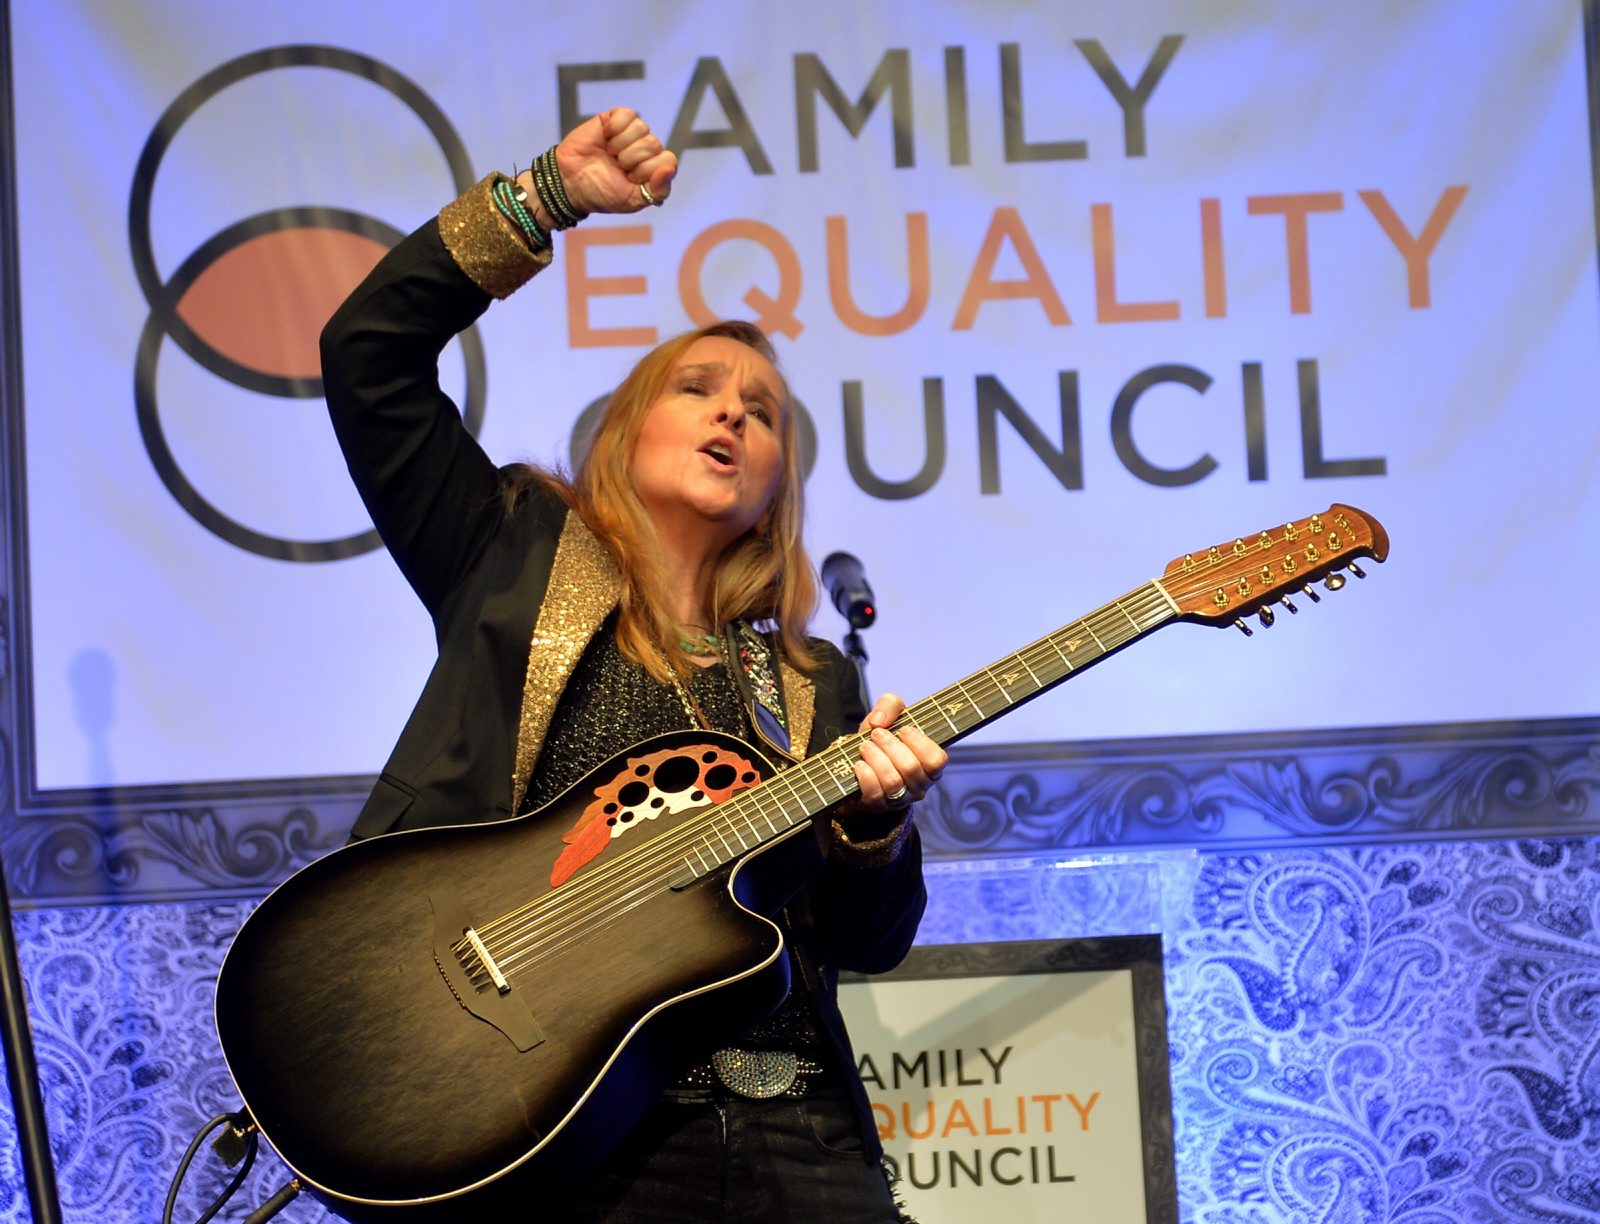 Melissa Etheridge onstage in 2014 at The Globe Theatre. (Charley Gallay/Getty Images)